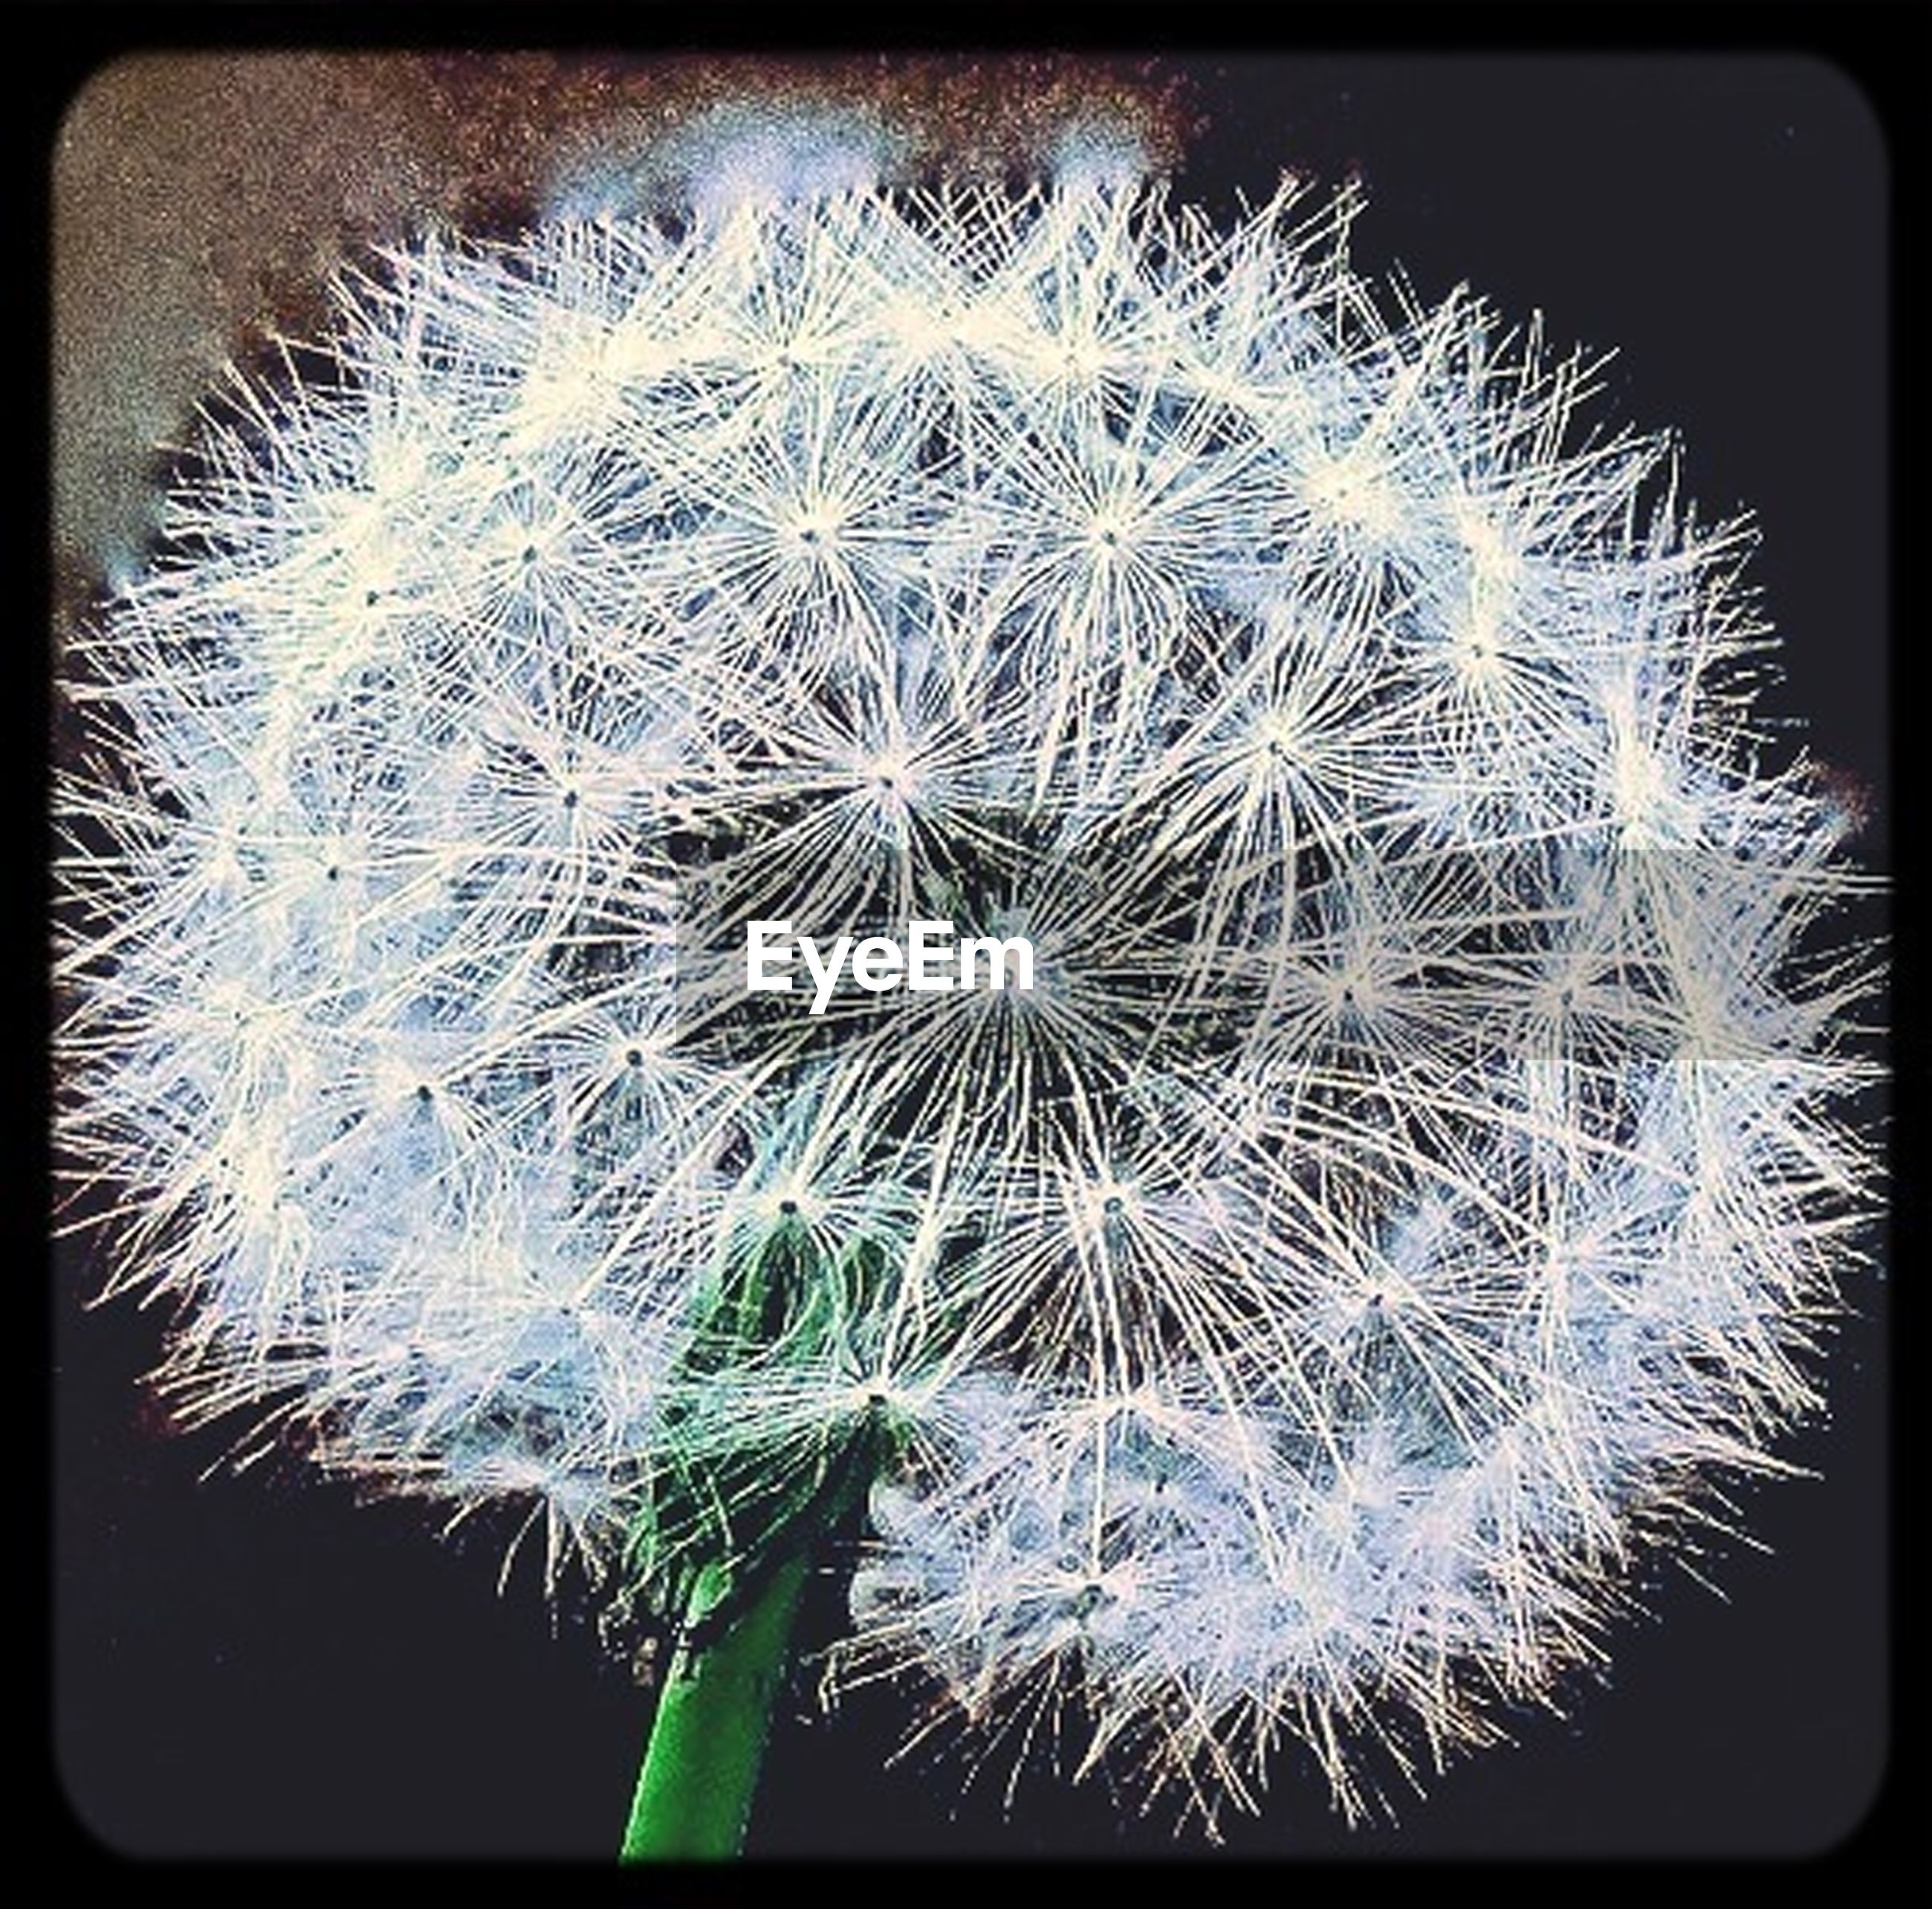 dandelion, transfer print, auto post production filter, close-up, flower, fragility, growth, freshness, flower head, nature, beauty in nature, dandelion seed, single flower, softness, seed, no people, uncultivated, outdoors, focus on foreground, simplicity